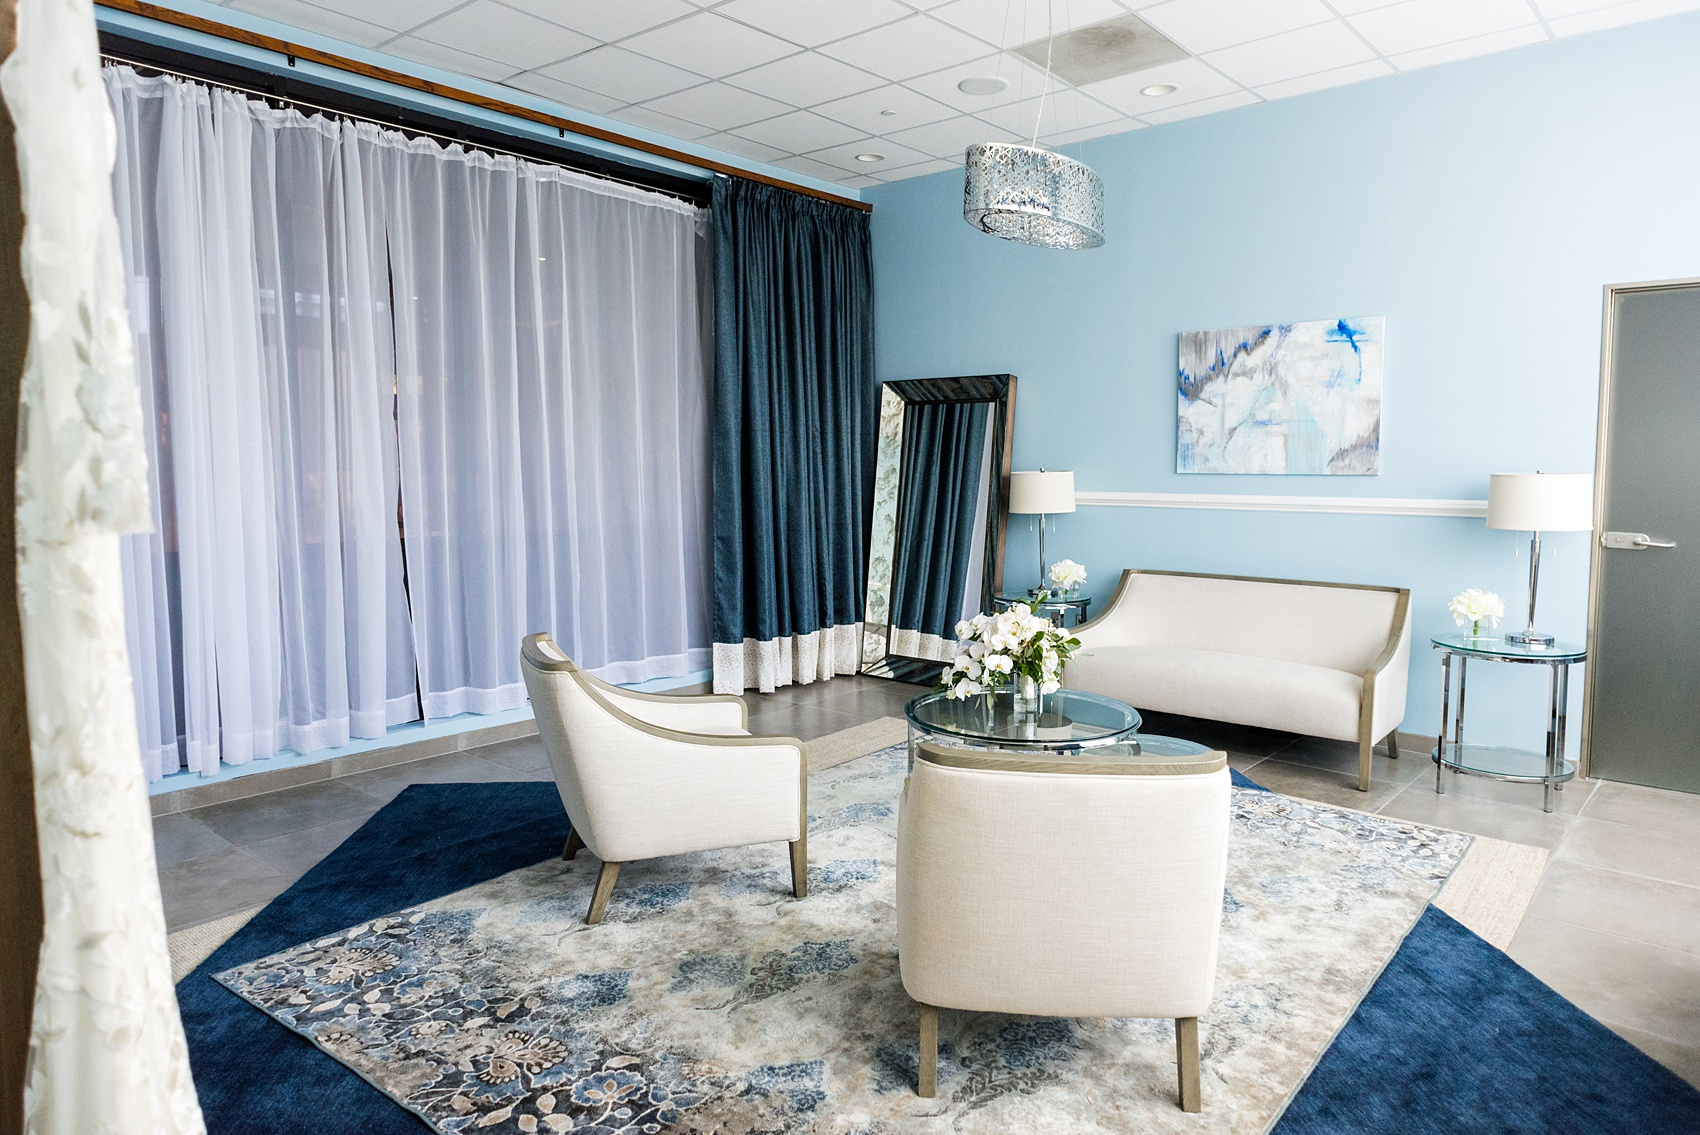 Downtown Raleigh wedding venue photos of Vidrio on Glenwood South, and their beautiful new bridal suite. Blue hues and neutral furniture are framed by paintings and a full length mirror in this beautiful space. #MikkelPaige #Vidrio #DowntownRaleigh #RaleighWeddingVenues